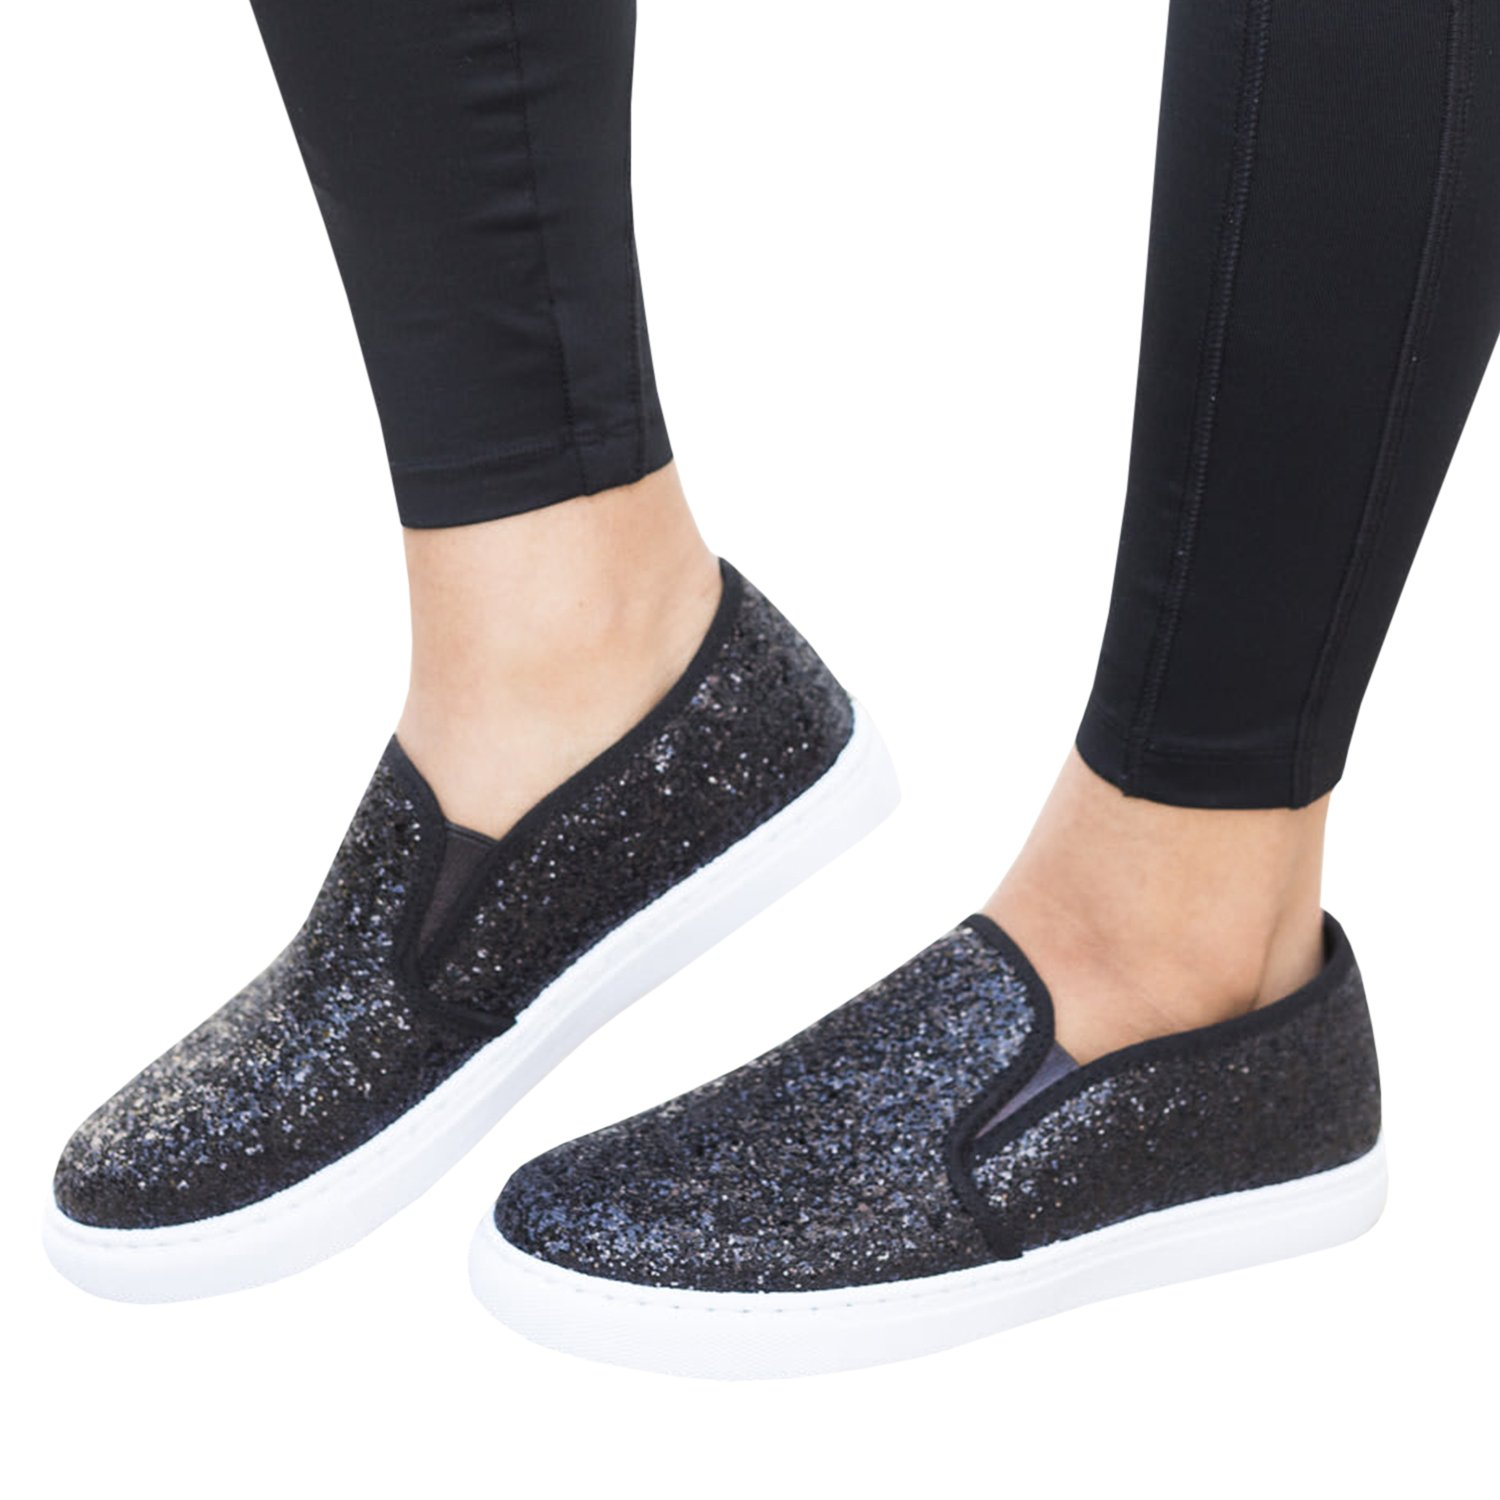 Ivay Women's Sparkly Glitter Fashion Sneakers Canvas Shoes Elastic Side Support